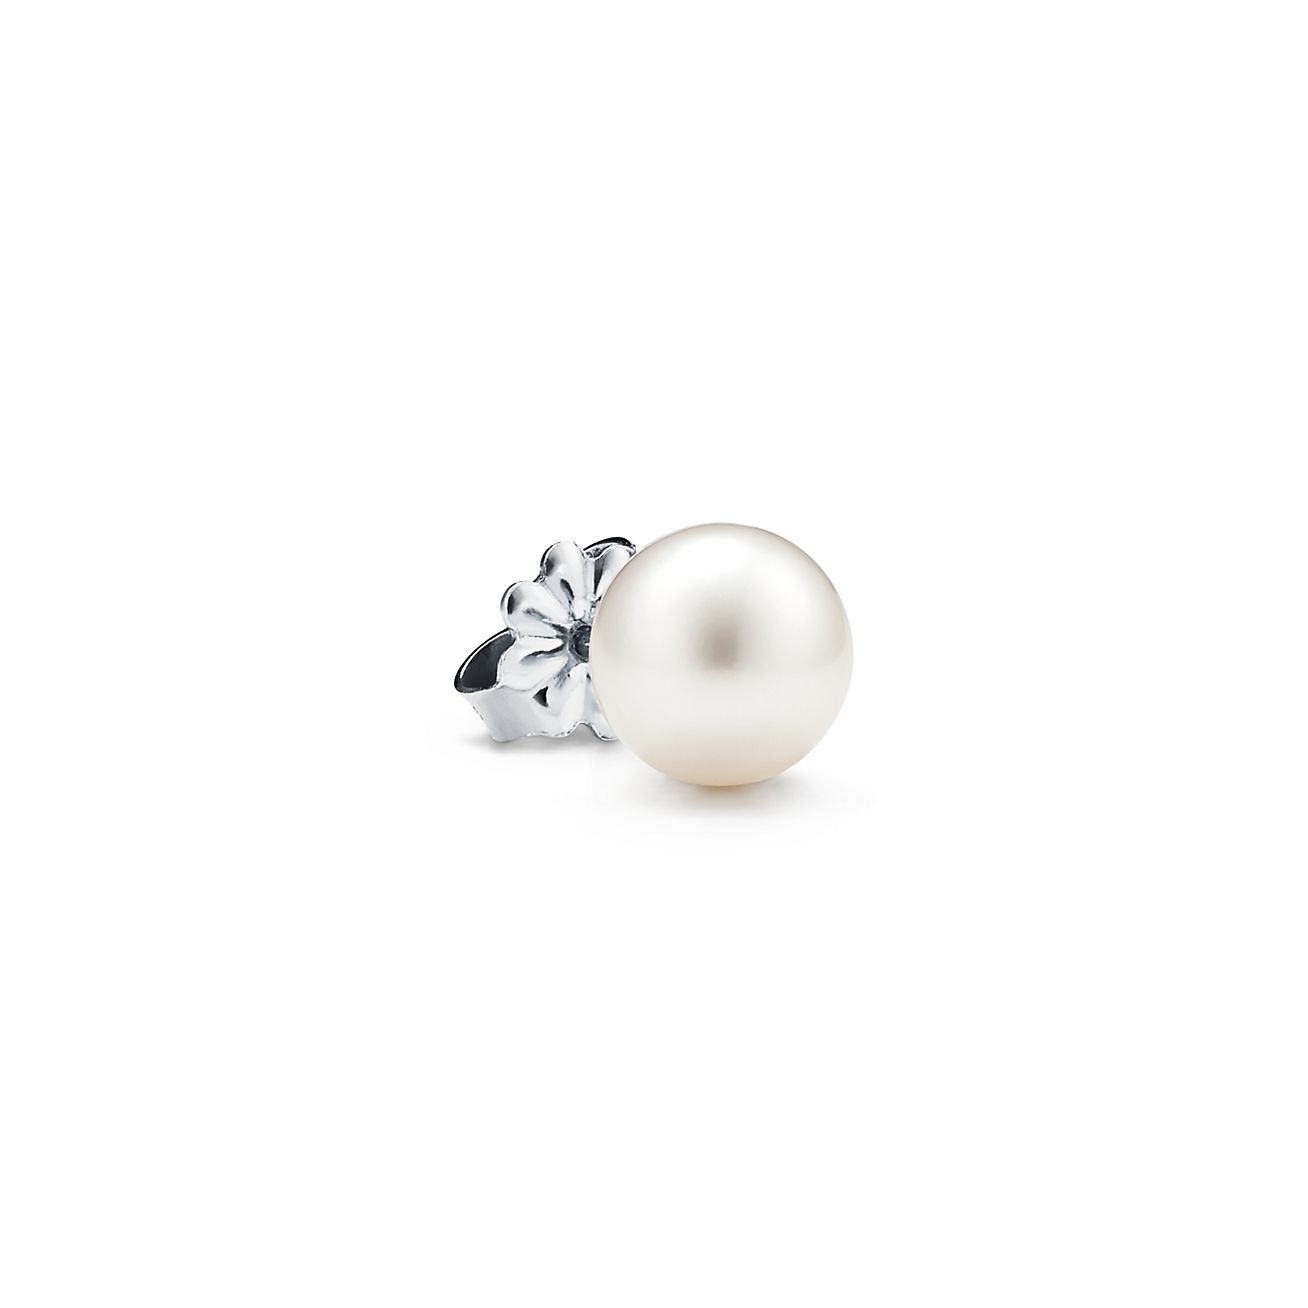 ChicSilver 4-12mm Handpicked White Freshwater Cultured Pearl Earrings Sterling Silver Studs for Women Girls Sensitive Ear with Gift Box